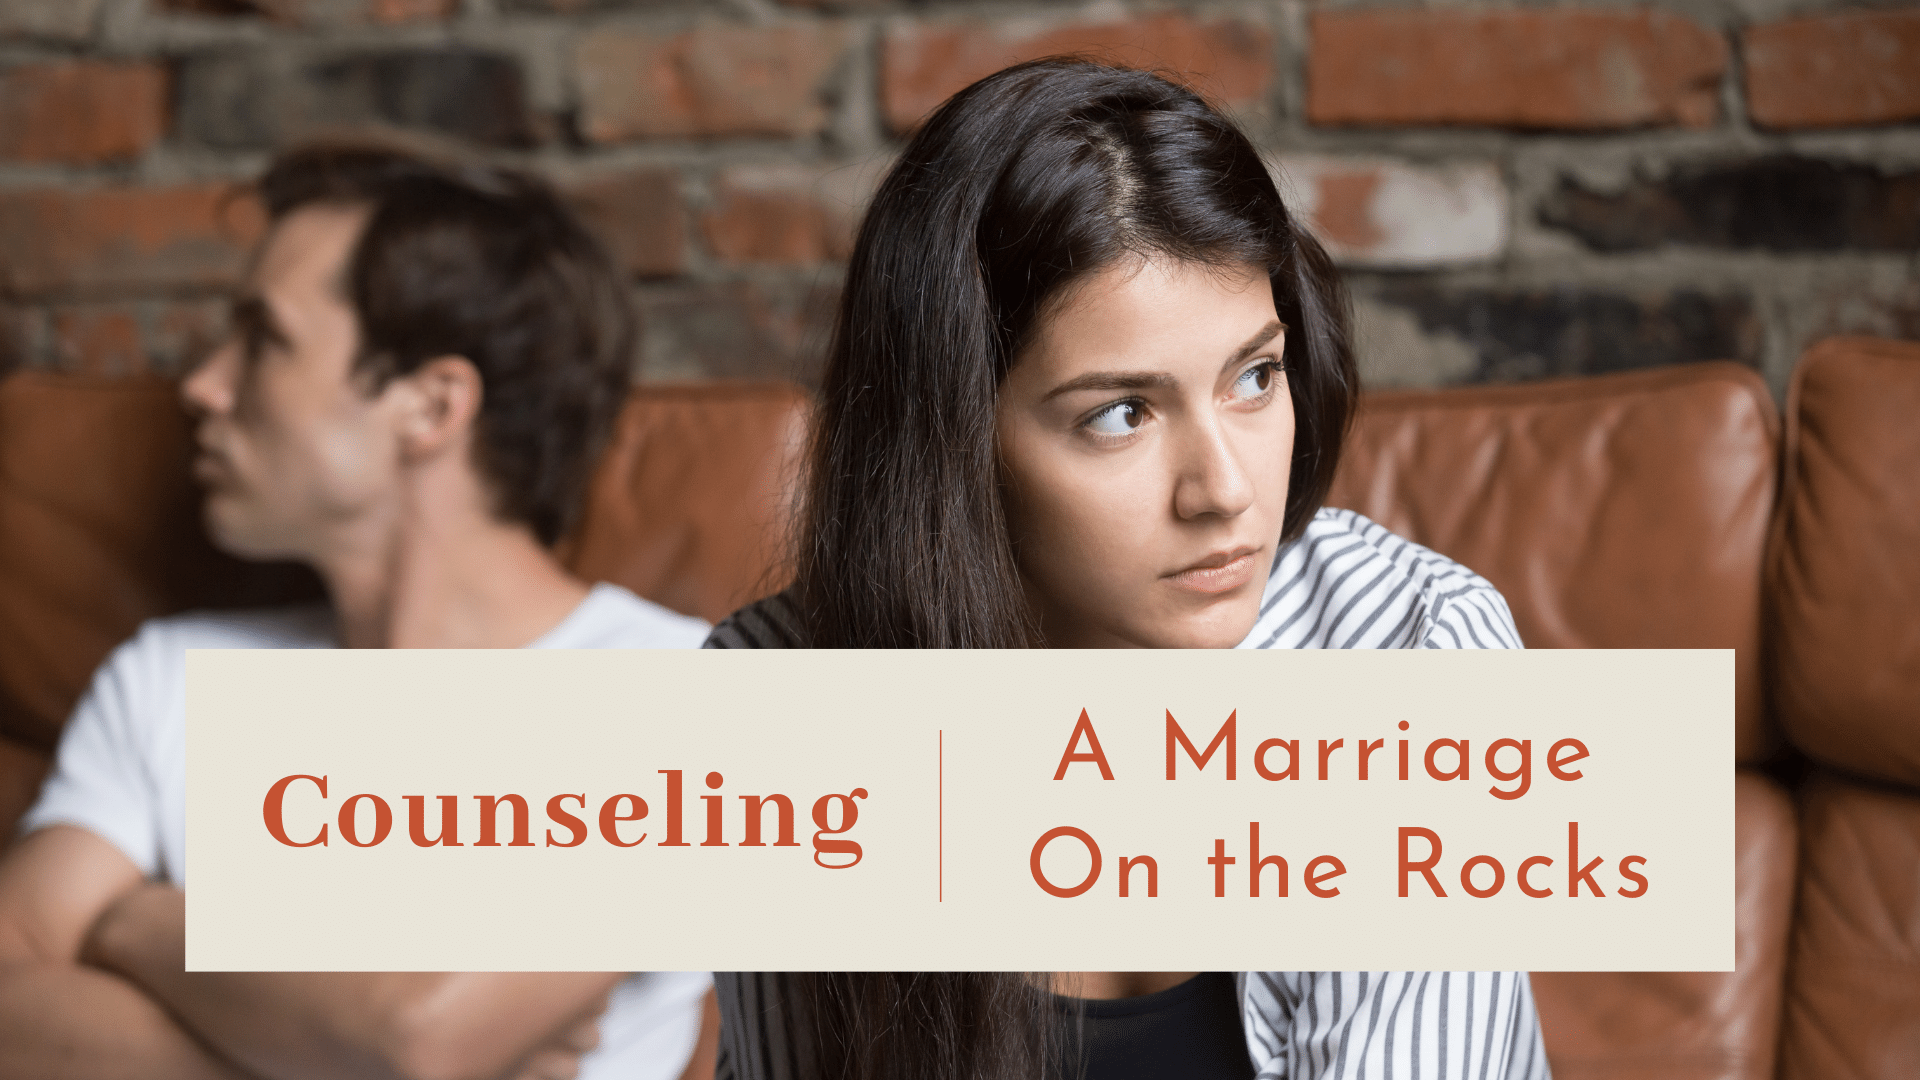 Video Channel Counseling a Marriage On the Rocks